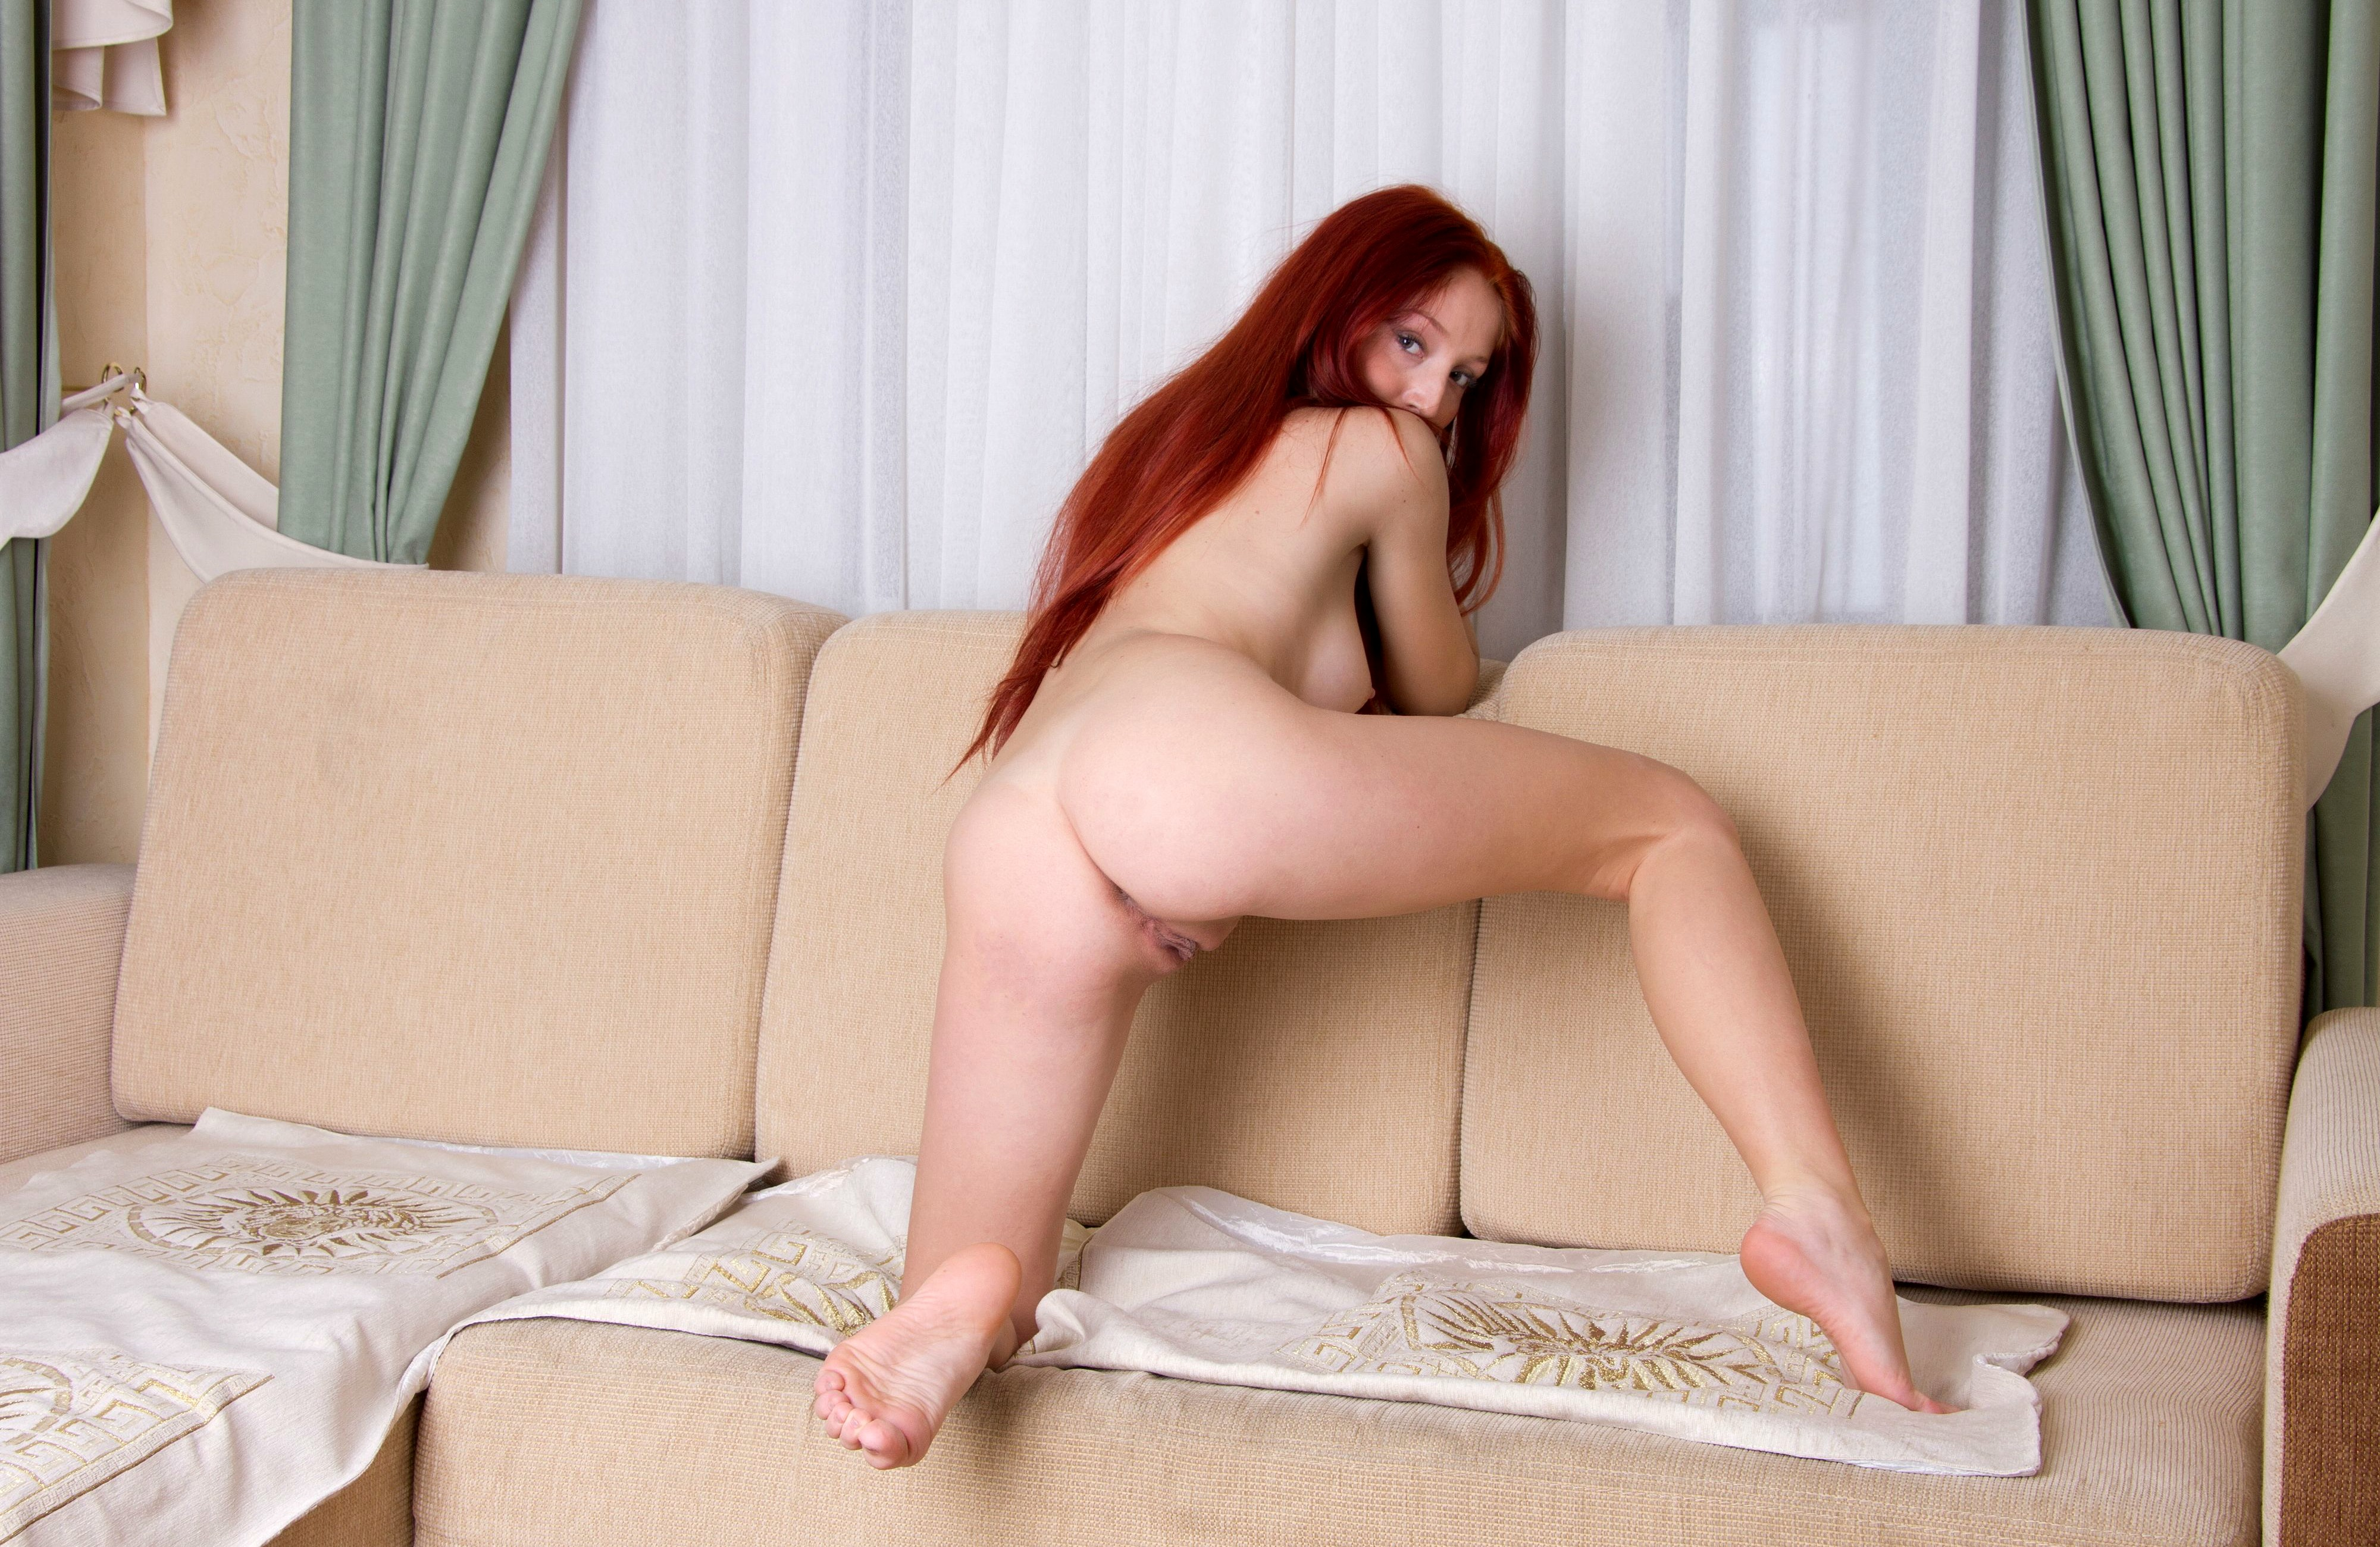 Red foxy girl nude commit